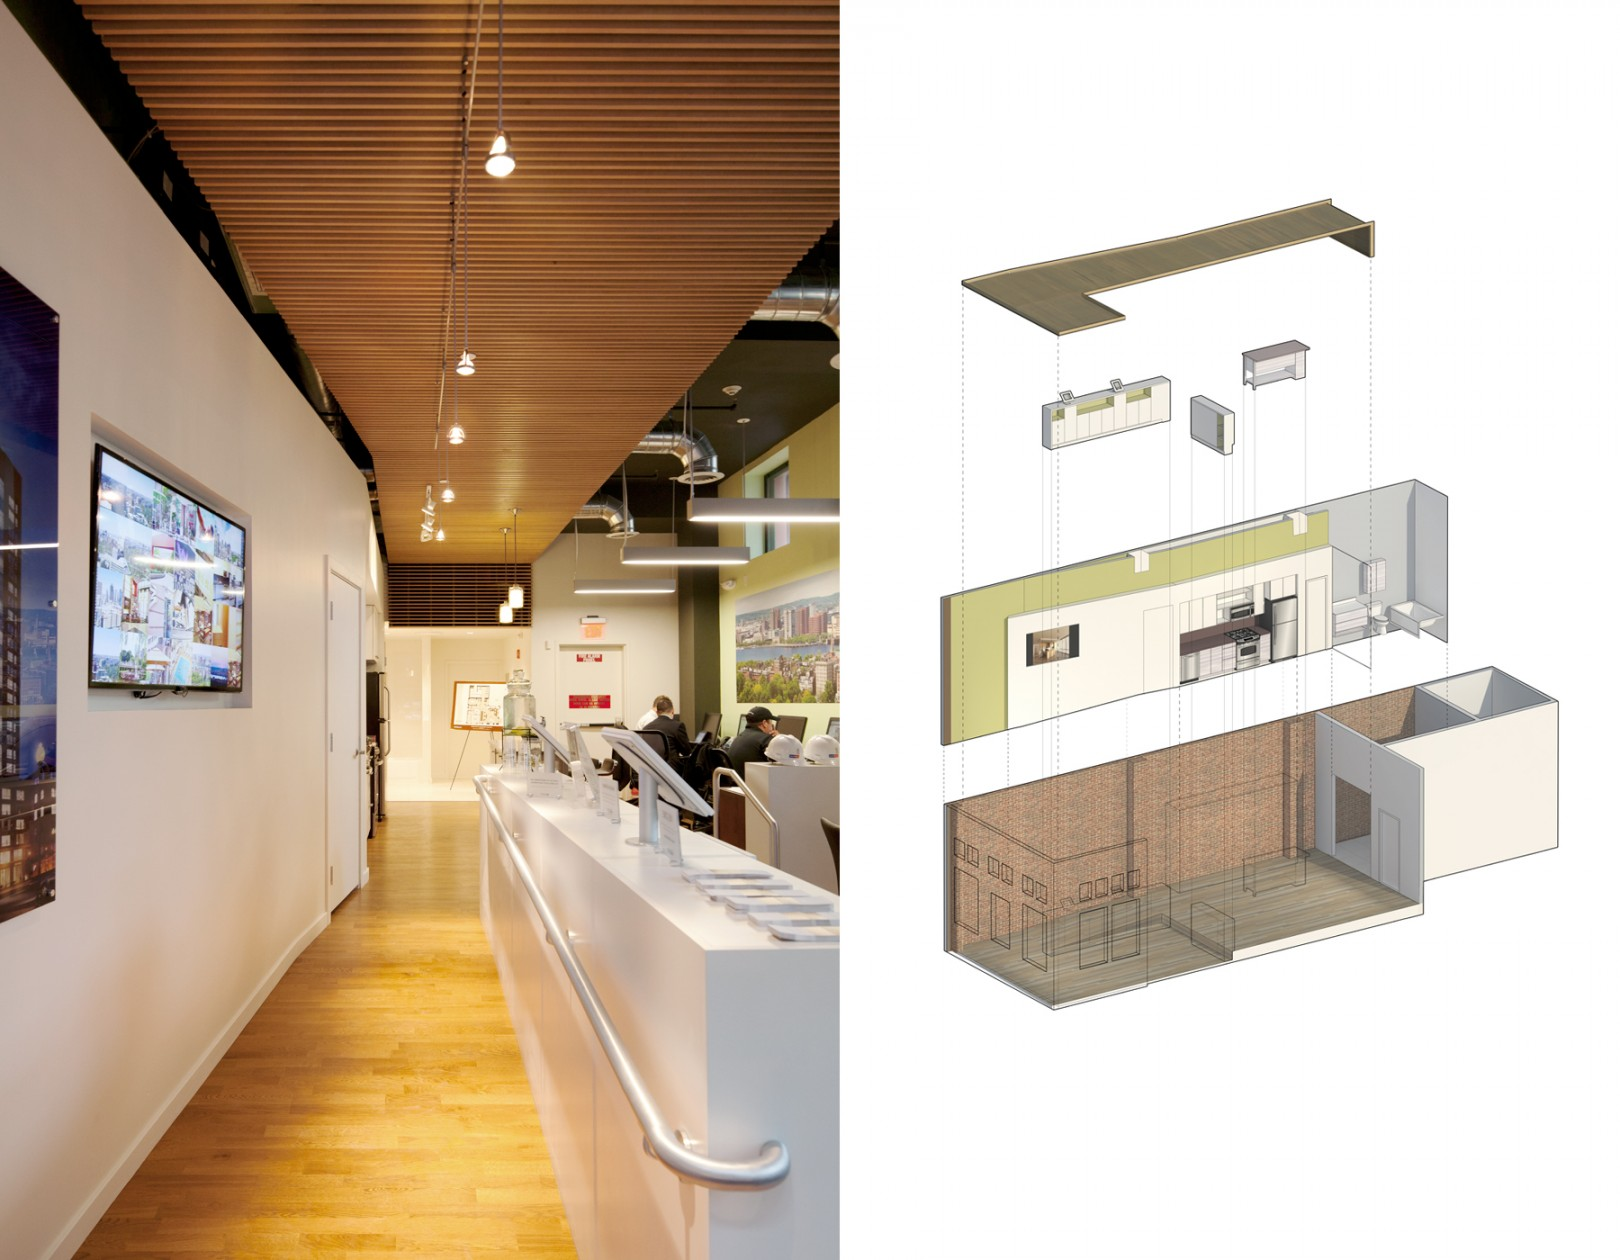 Leasing office cube design research for Leasing office decorating ideas